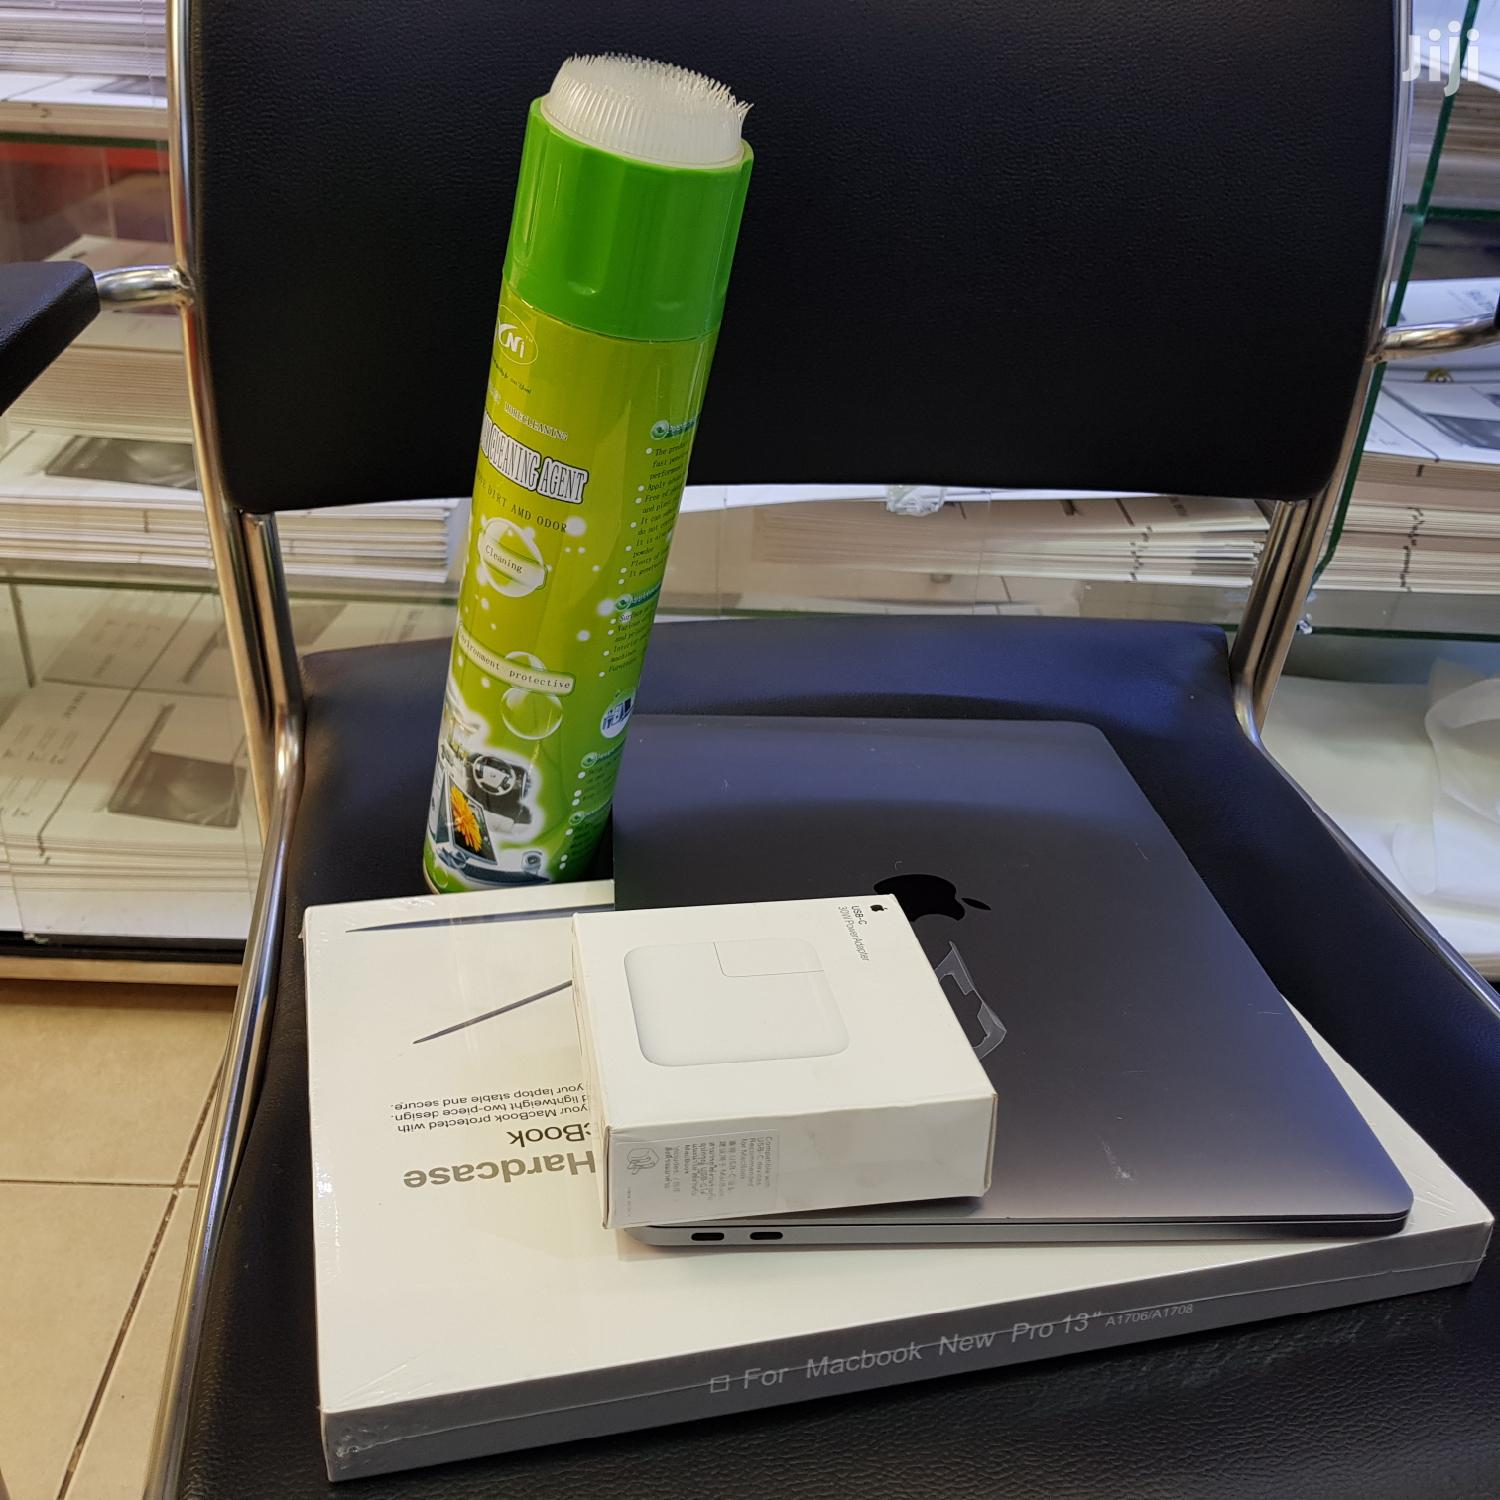 New Release Apple Macbook Pro 13 256 Hdd Core i5 8Gb Ram | Laptops & Computers for sale in Kampala, Central Region, Uganda